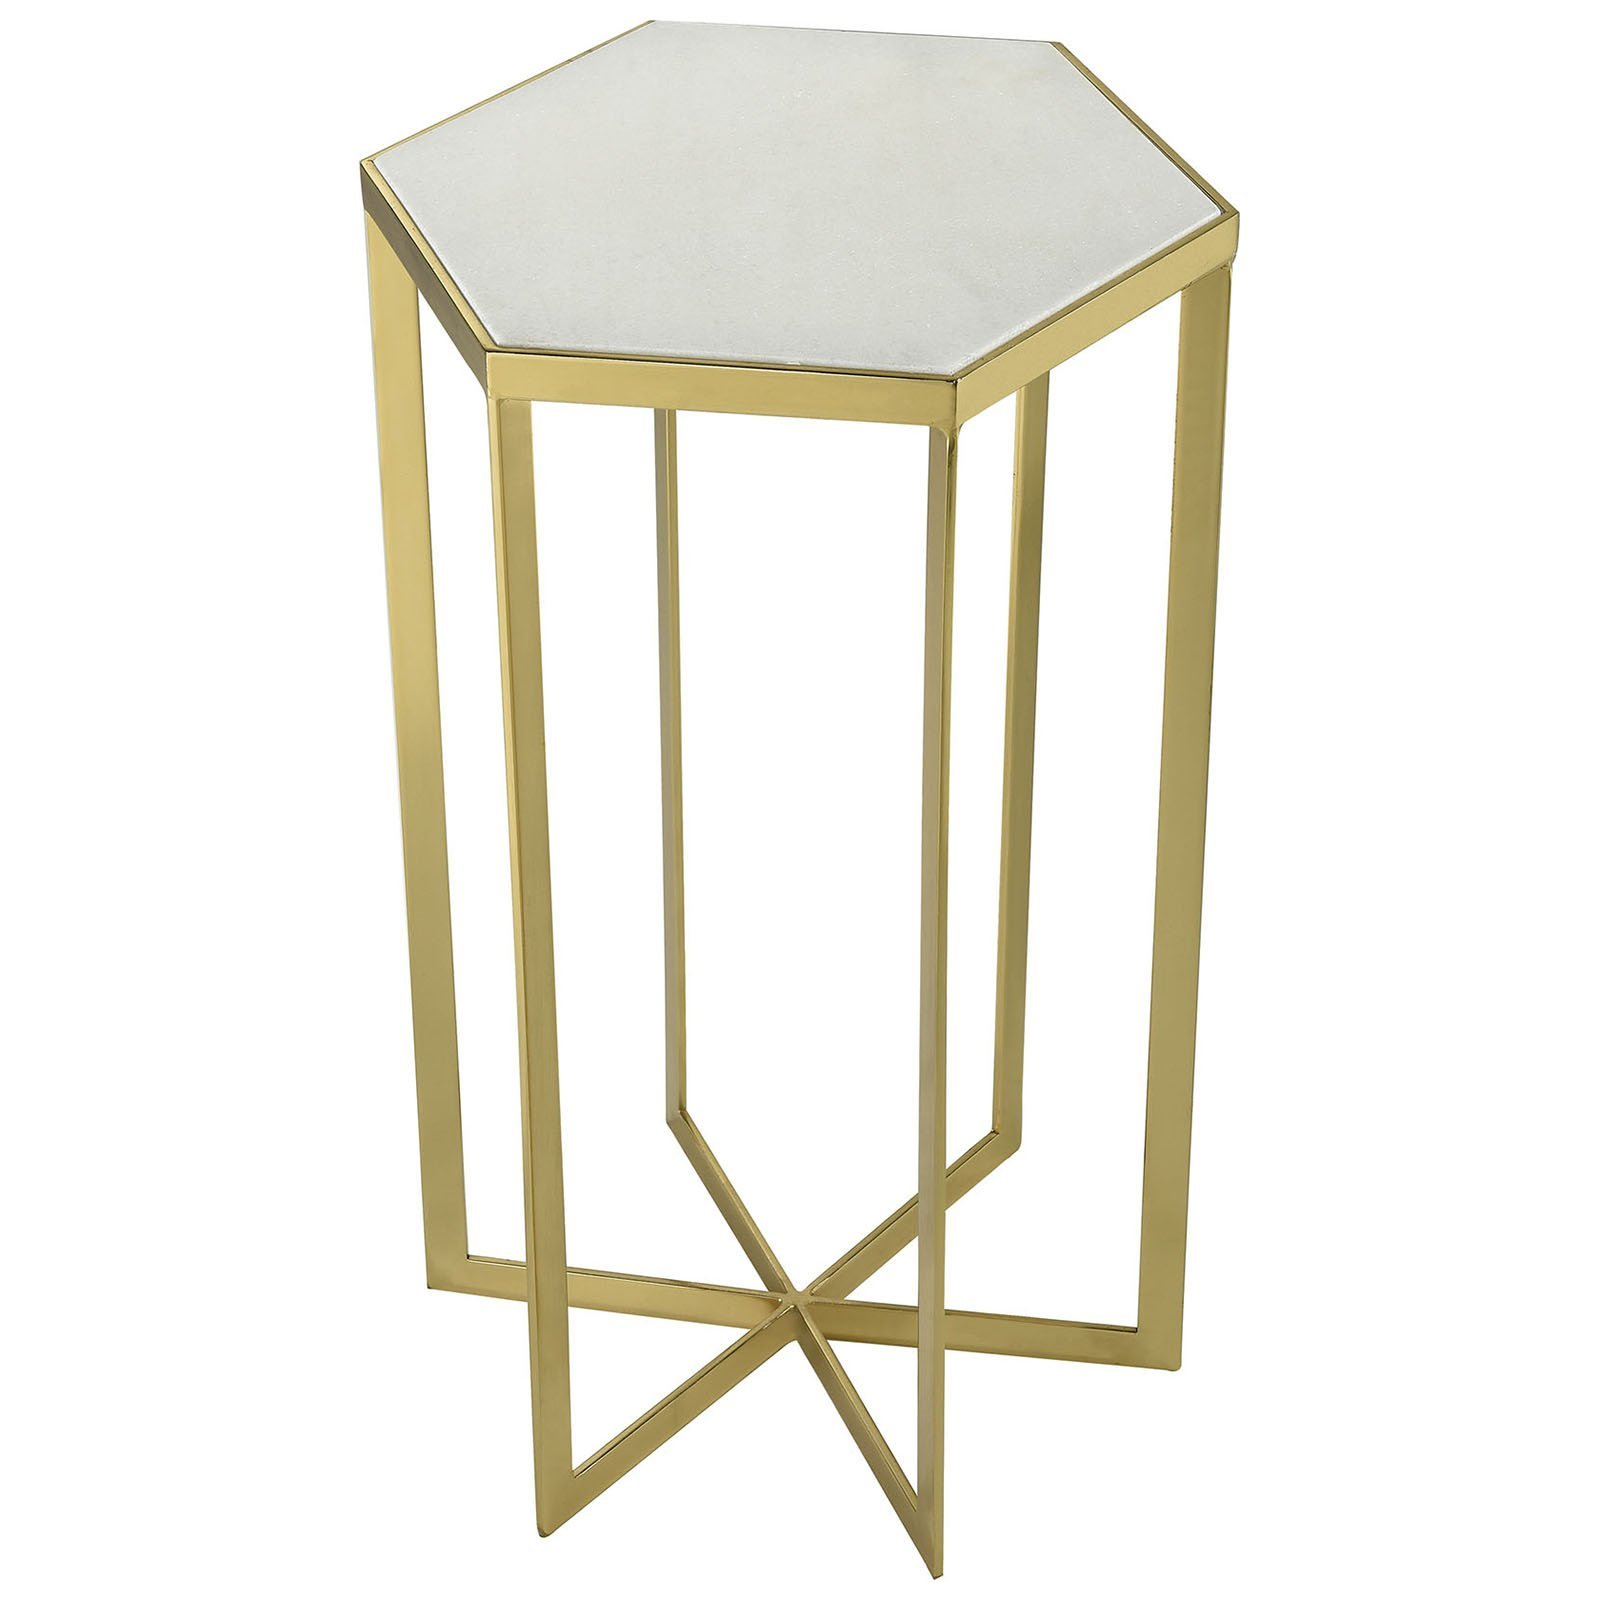 halter contemporary accent tables gold fratantoni lifestyles table with marble top plated metal genuine white dale tiffany hummingbird lamp diy sliding door trestle seater dining